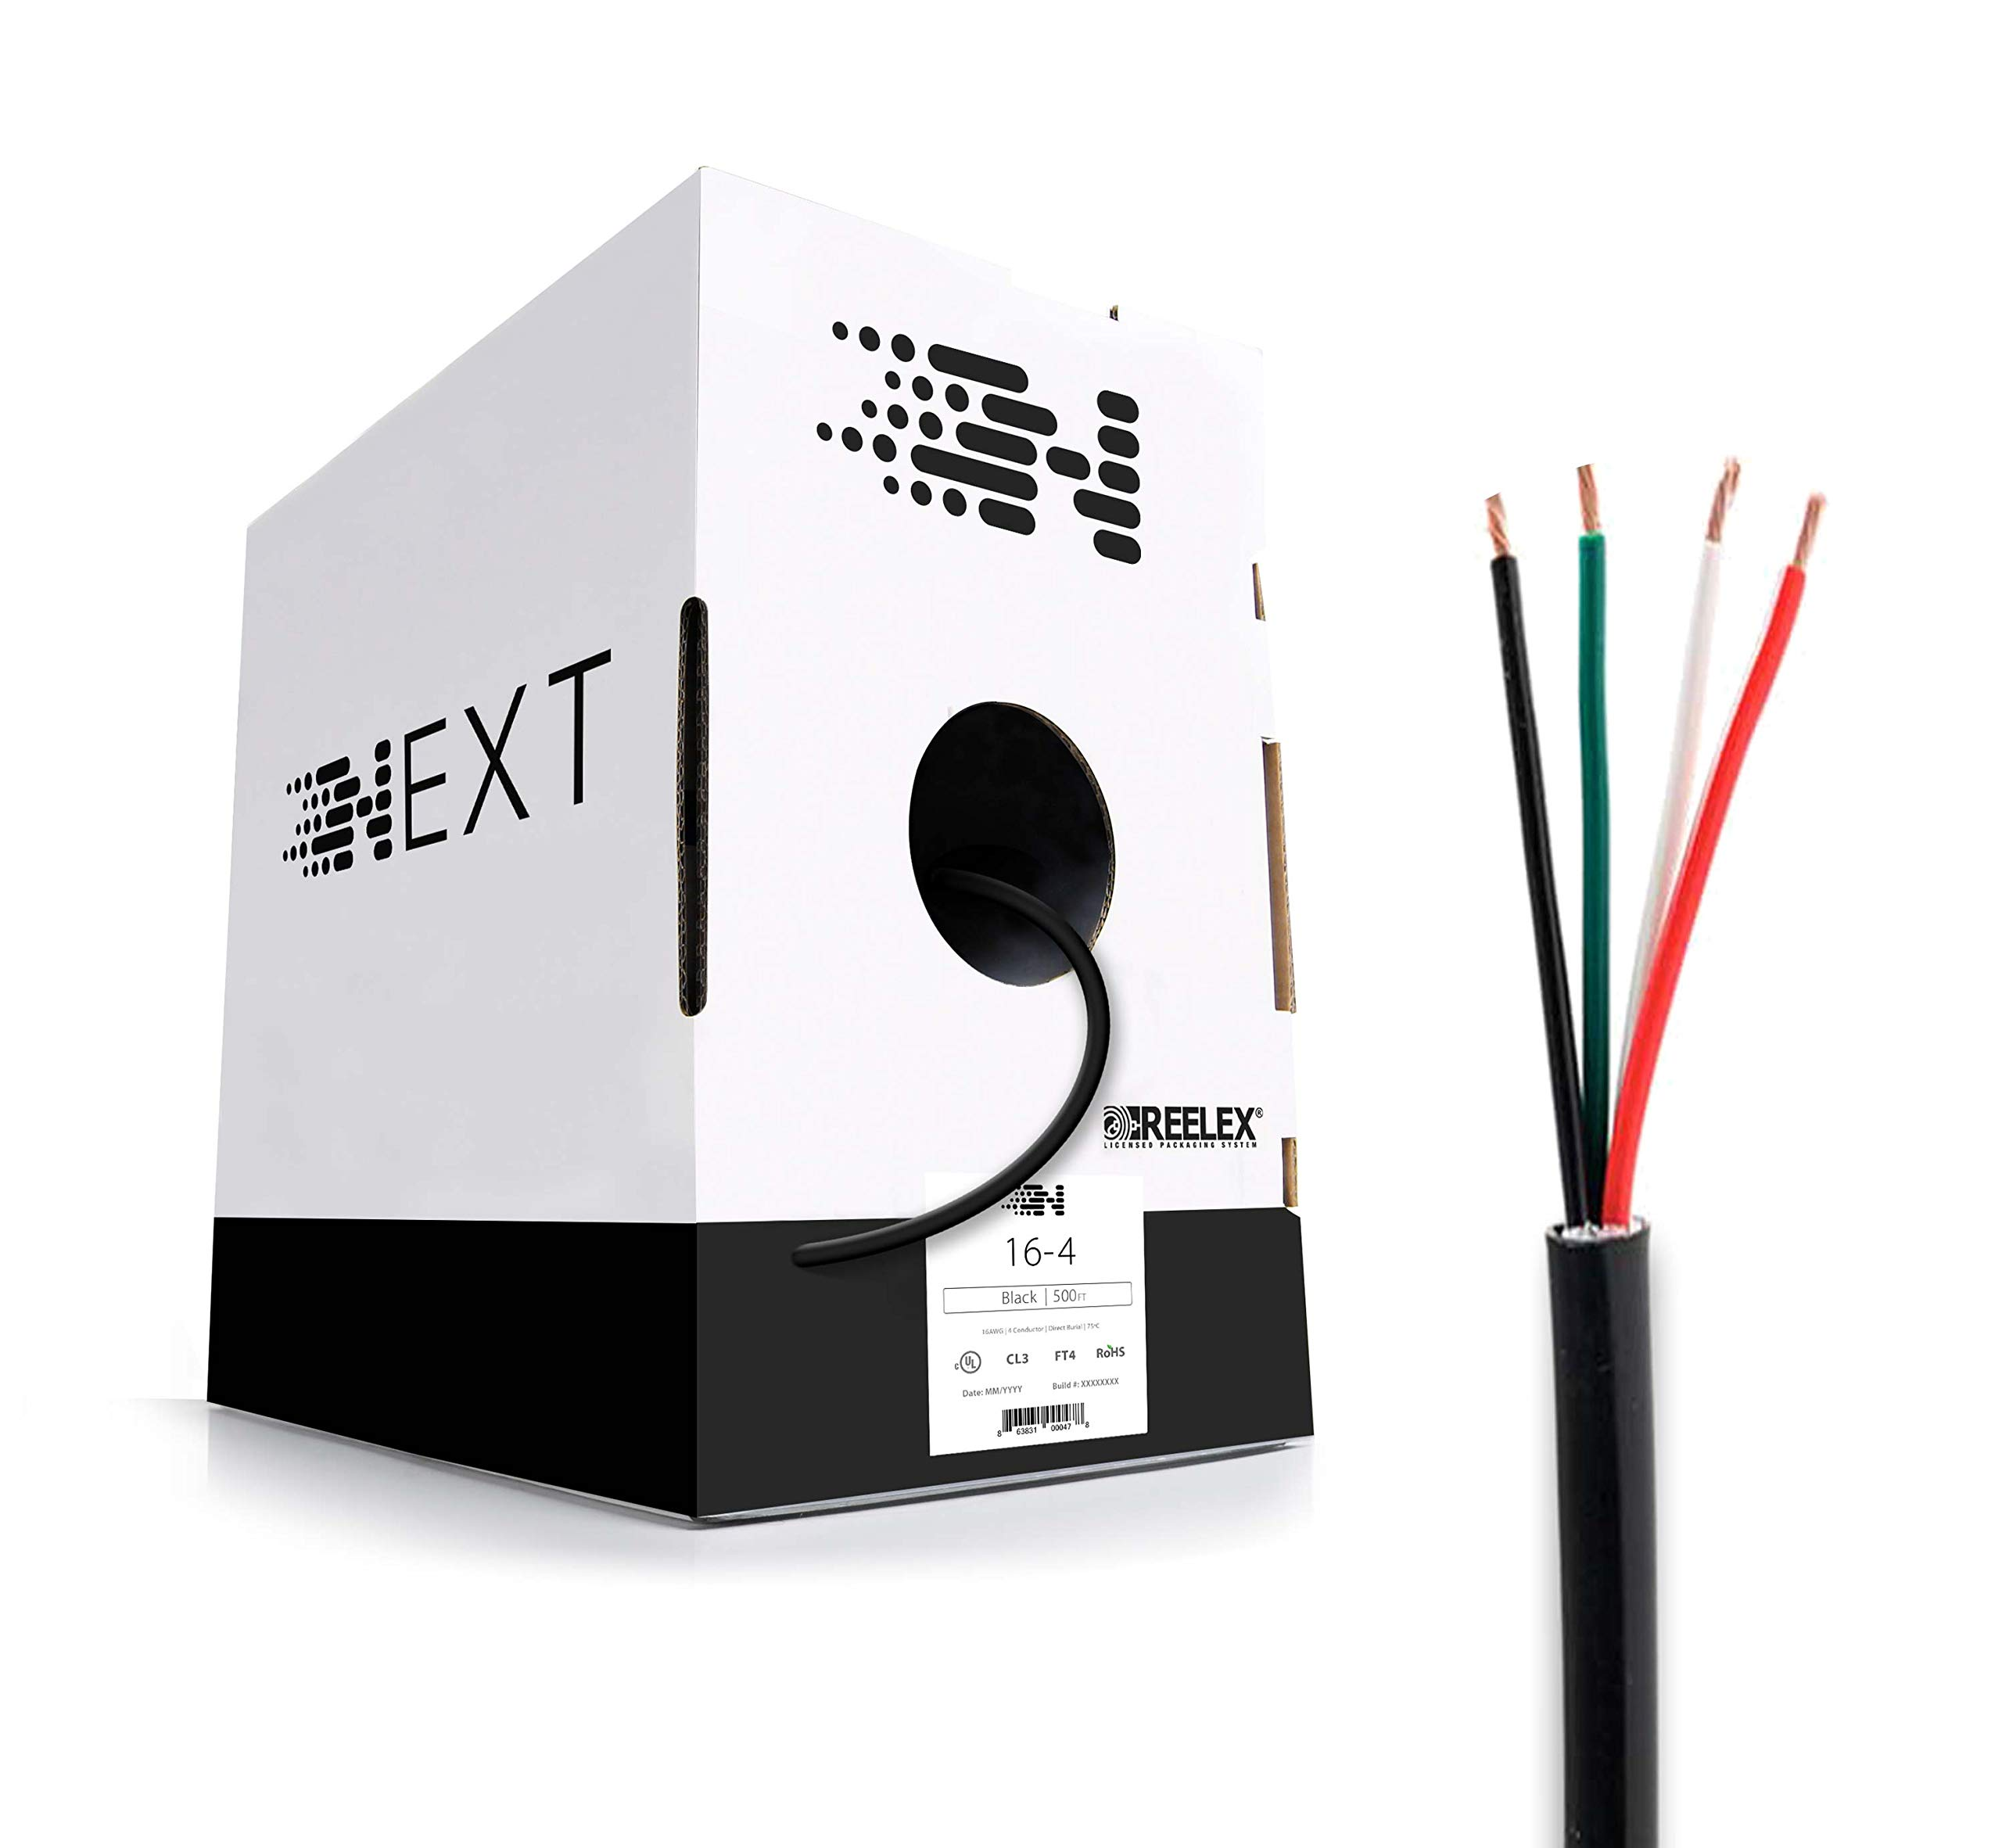 Next 16/4 Speaker Wire - 16 AWG/Gauge 4 Conductor - UL Listed in Wall (CL2/CL3) and Outdoor/In Ground (Direct Burial) Rated - Oxygen-Free Copper (OFC) - 500 Foot Bulk Cable Pull Box - Black by Next